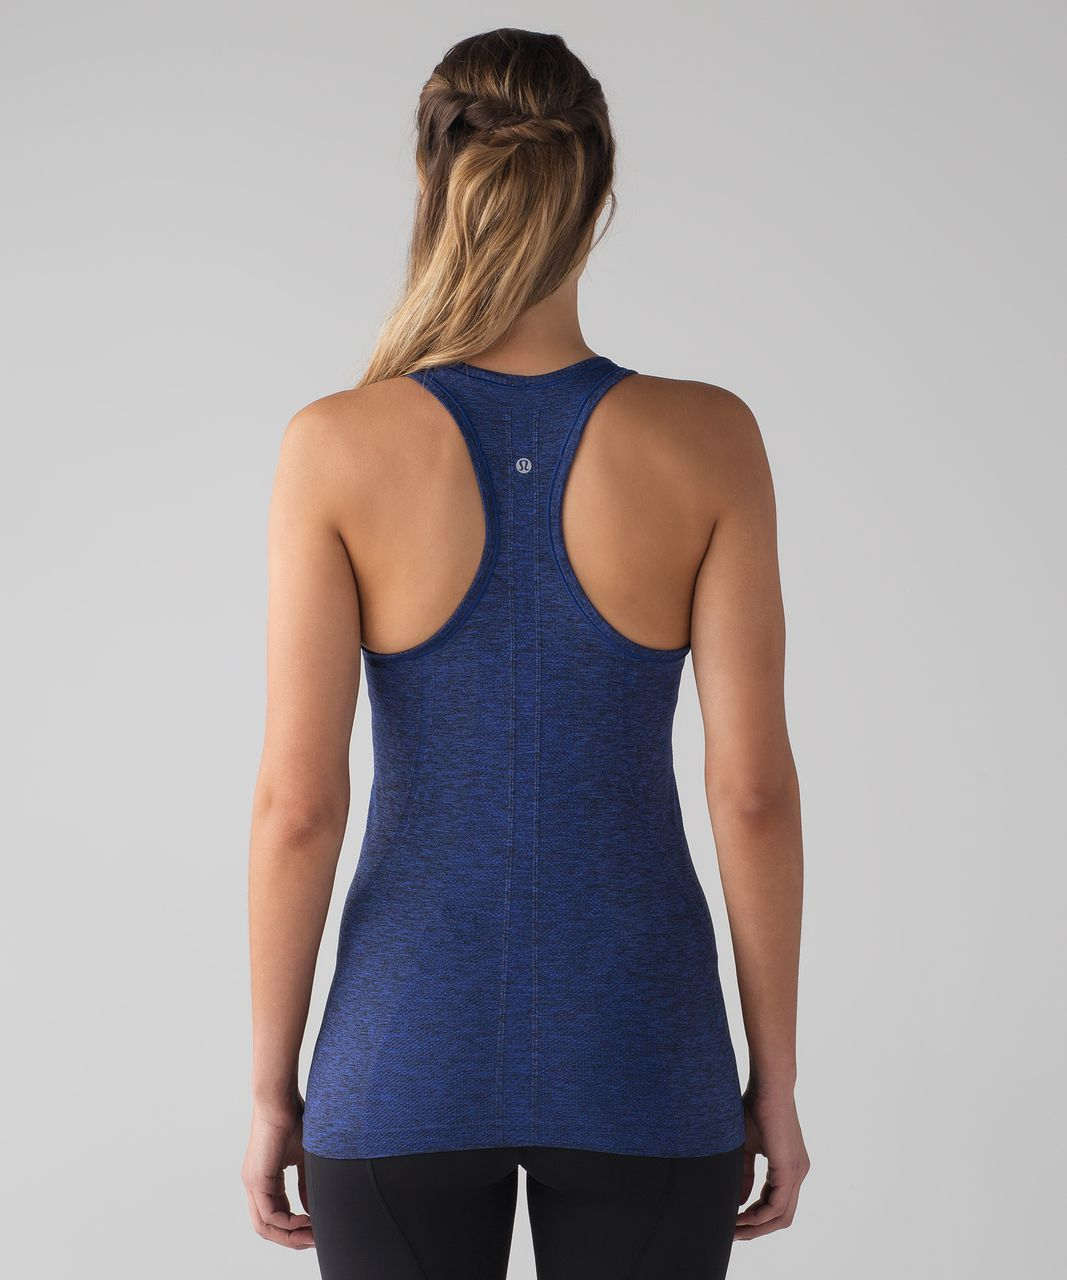 Lululemon Swiftly Tech Racerback - Blazer Blue / Black